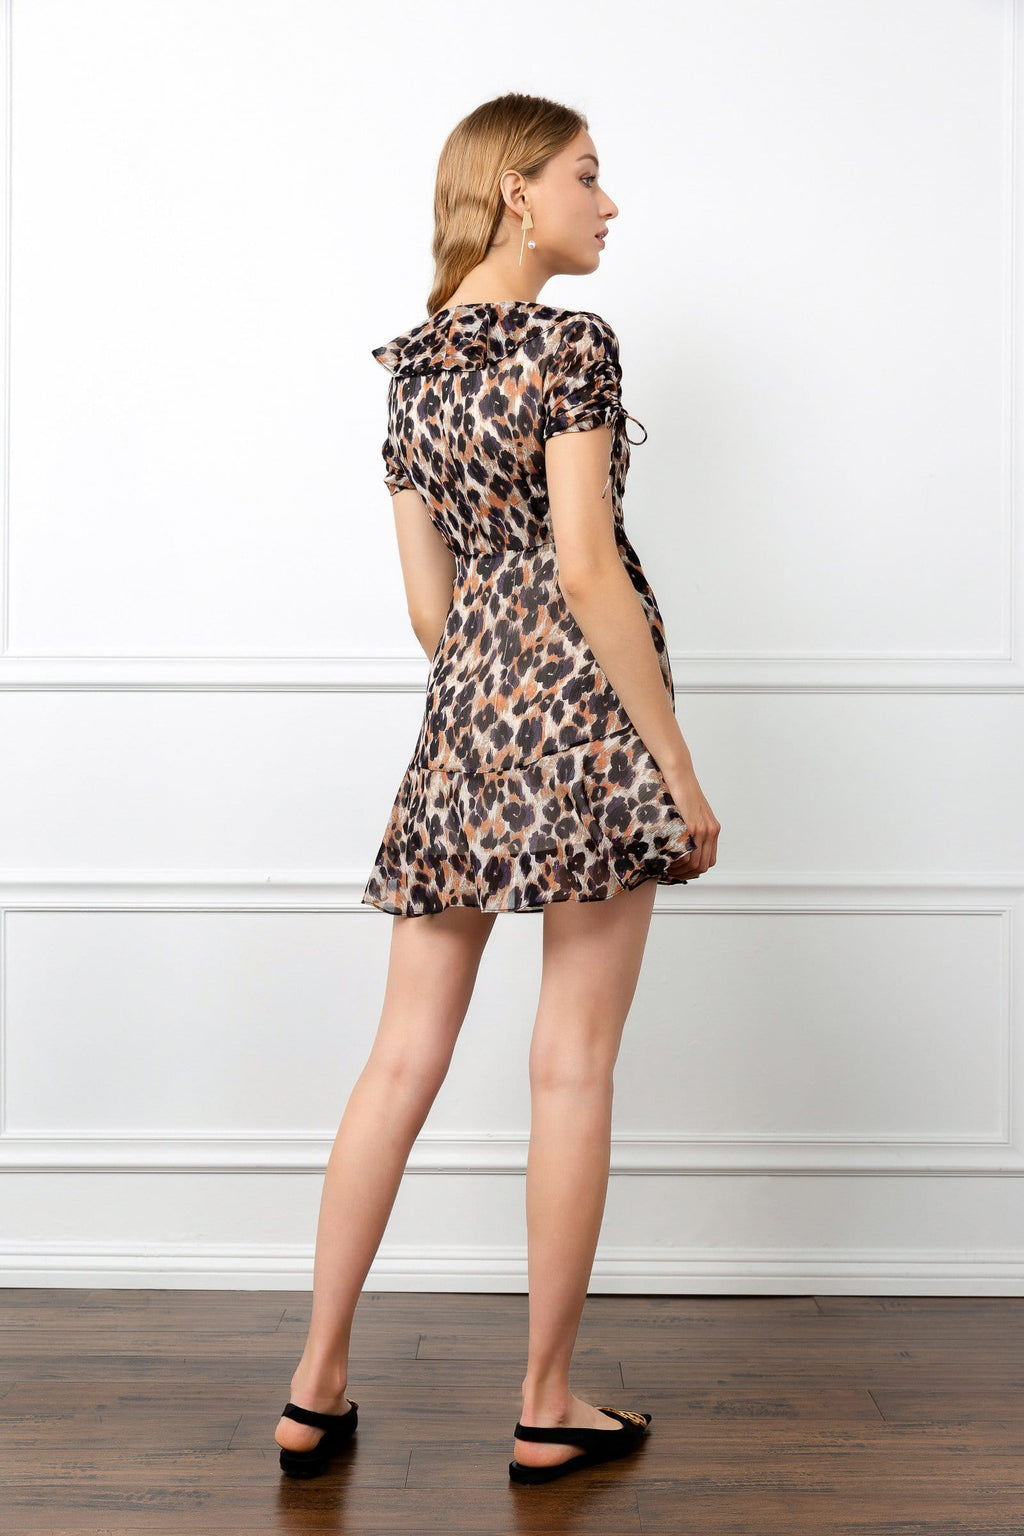 Leopard Print backside of dress cute j.ing